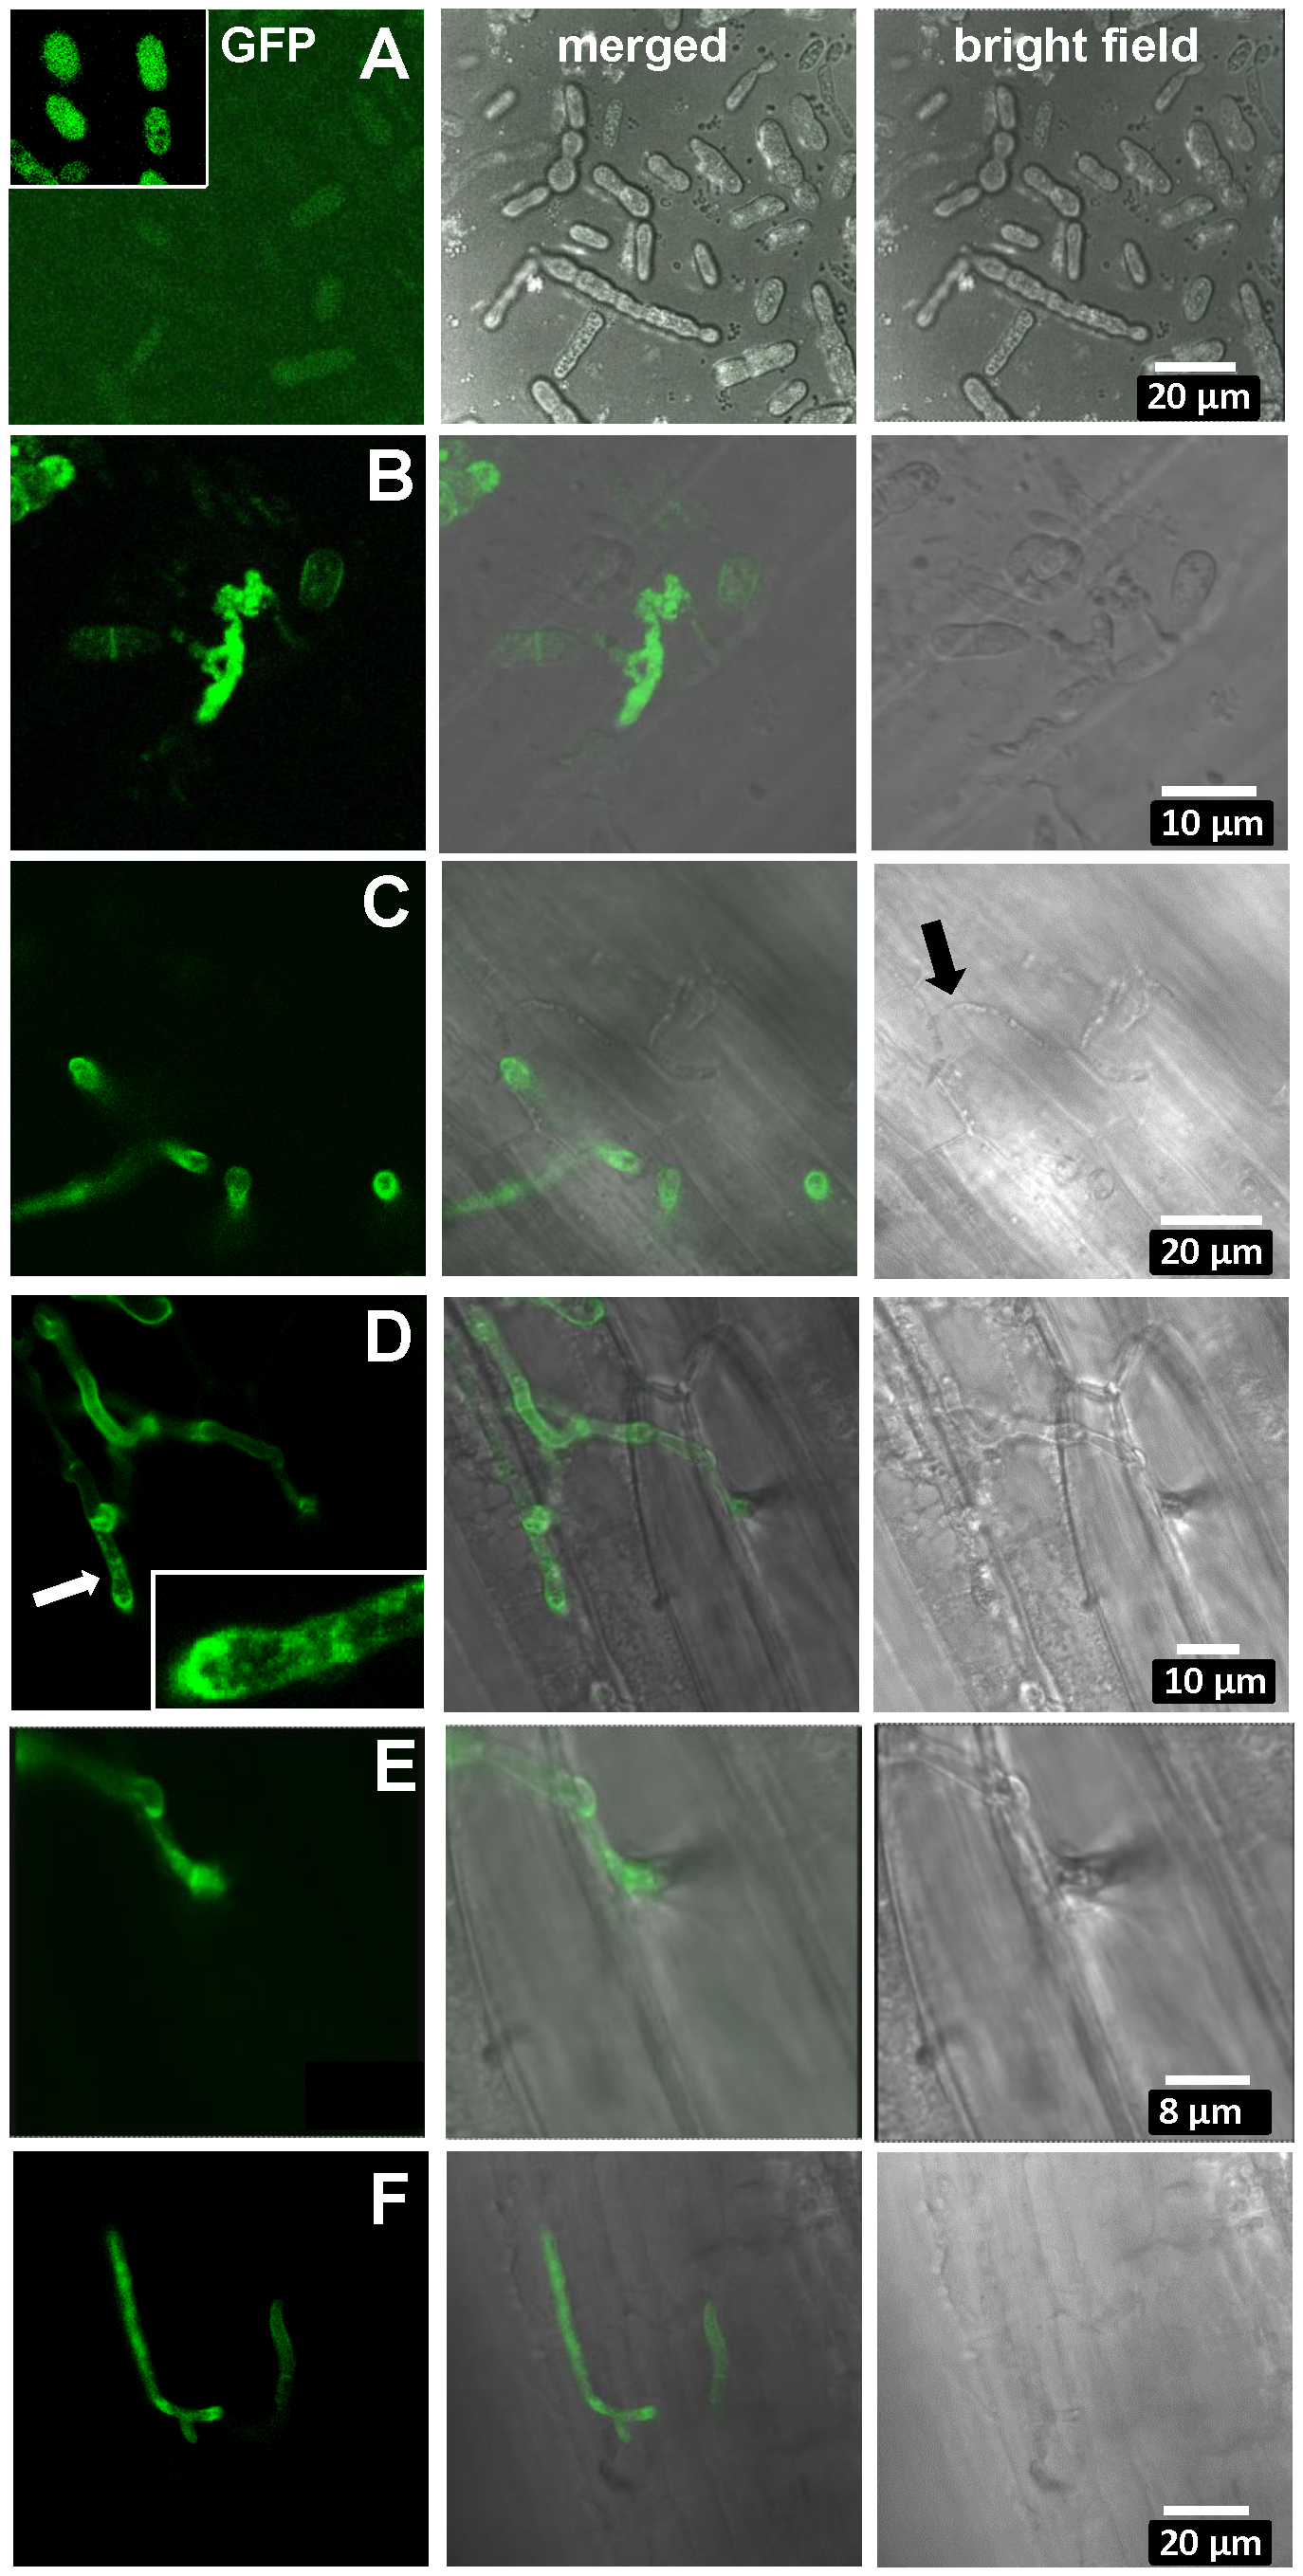 Expression of UhAVR1:GFP chimers during infection.